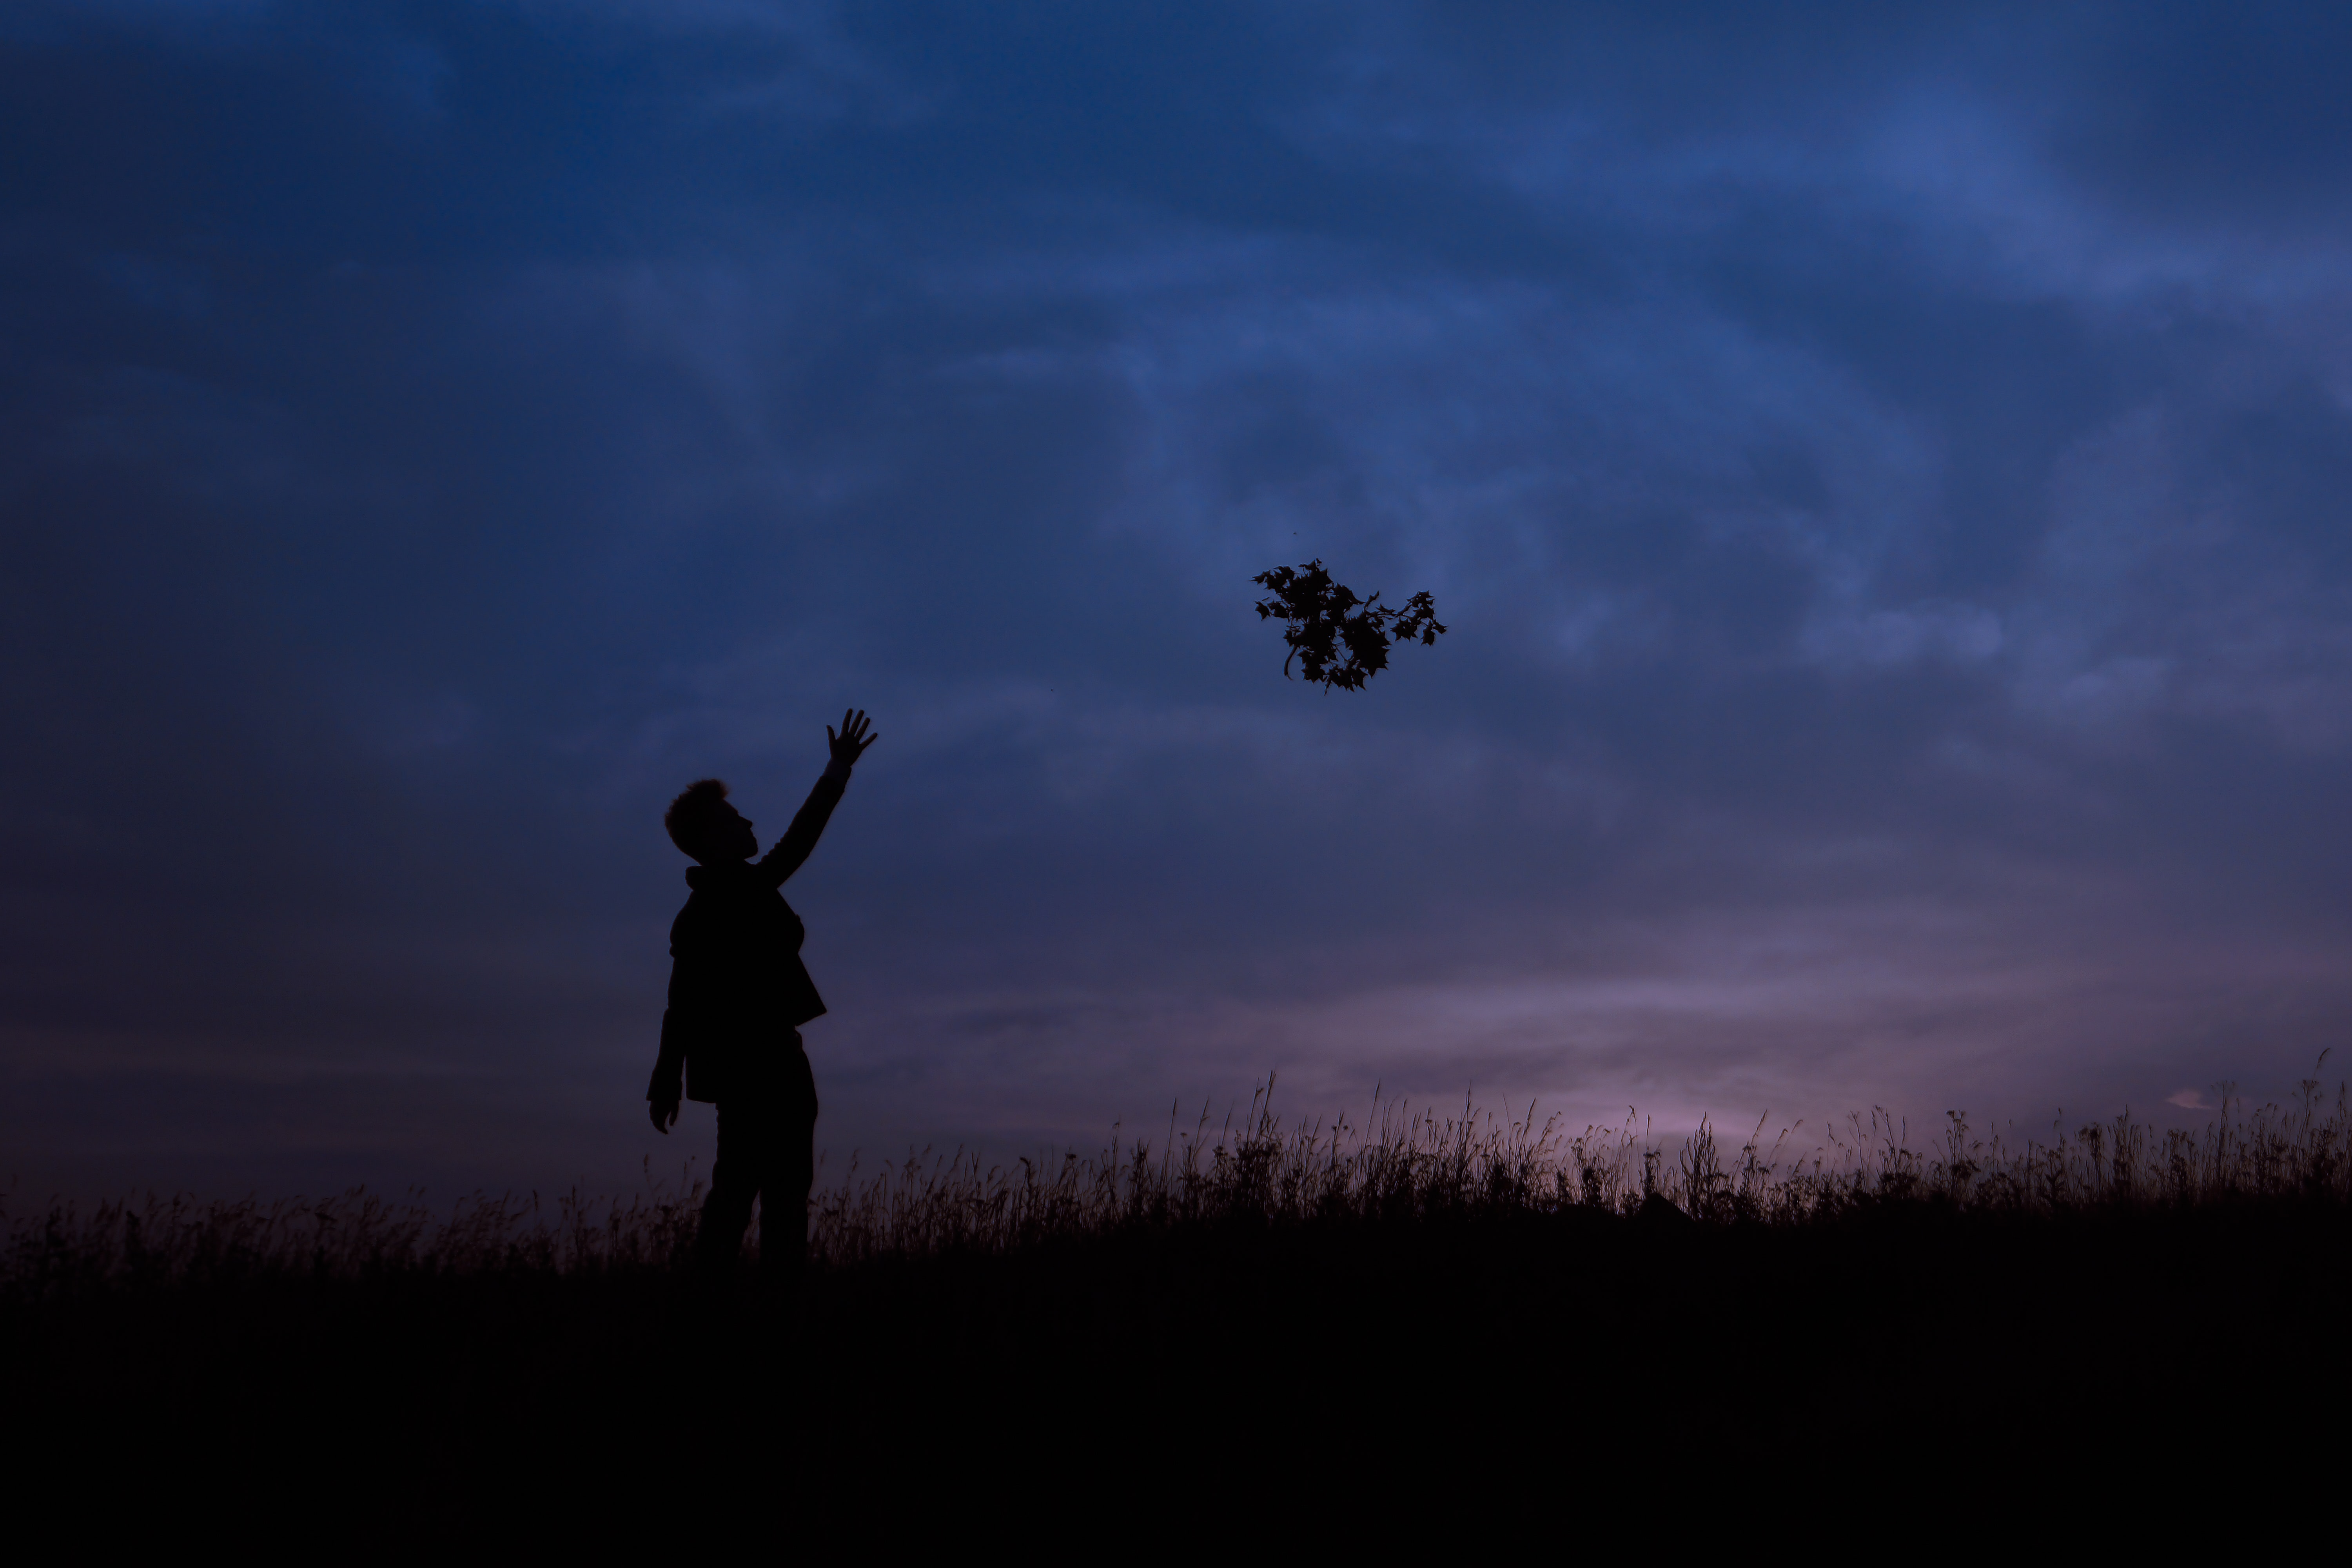 A silhouette of a person throwing a leafy branch in the air at dusk